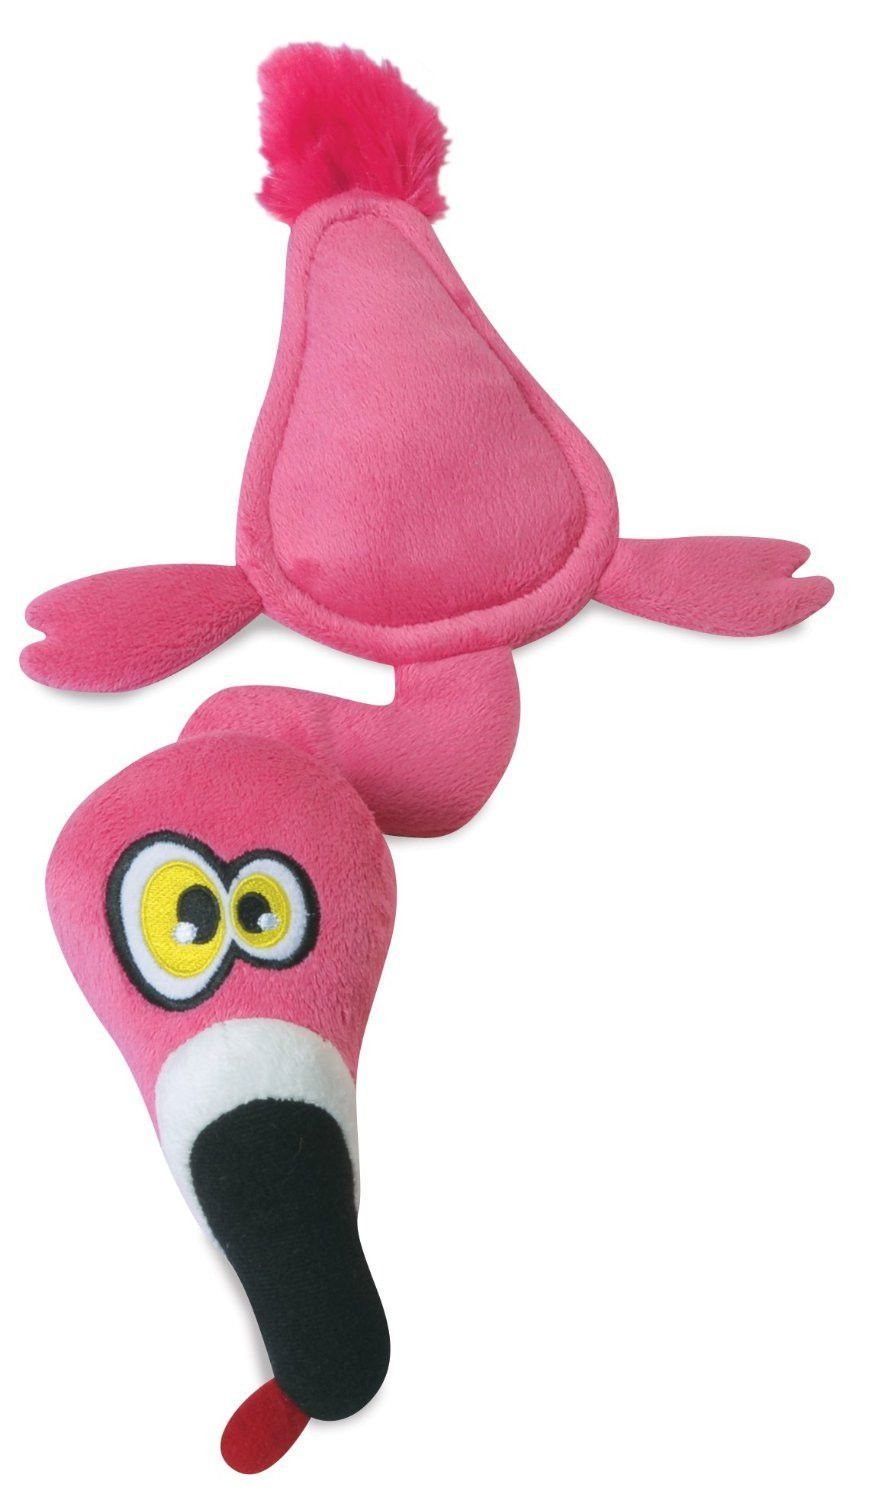 Hear Doggy Flamingo Ultrasonic Silent Squeak Dog Toy Dog Toys